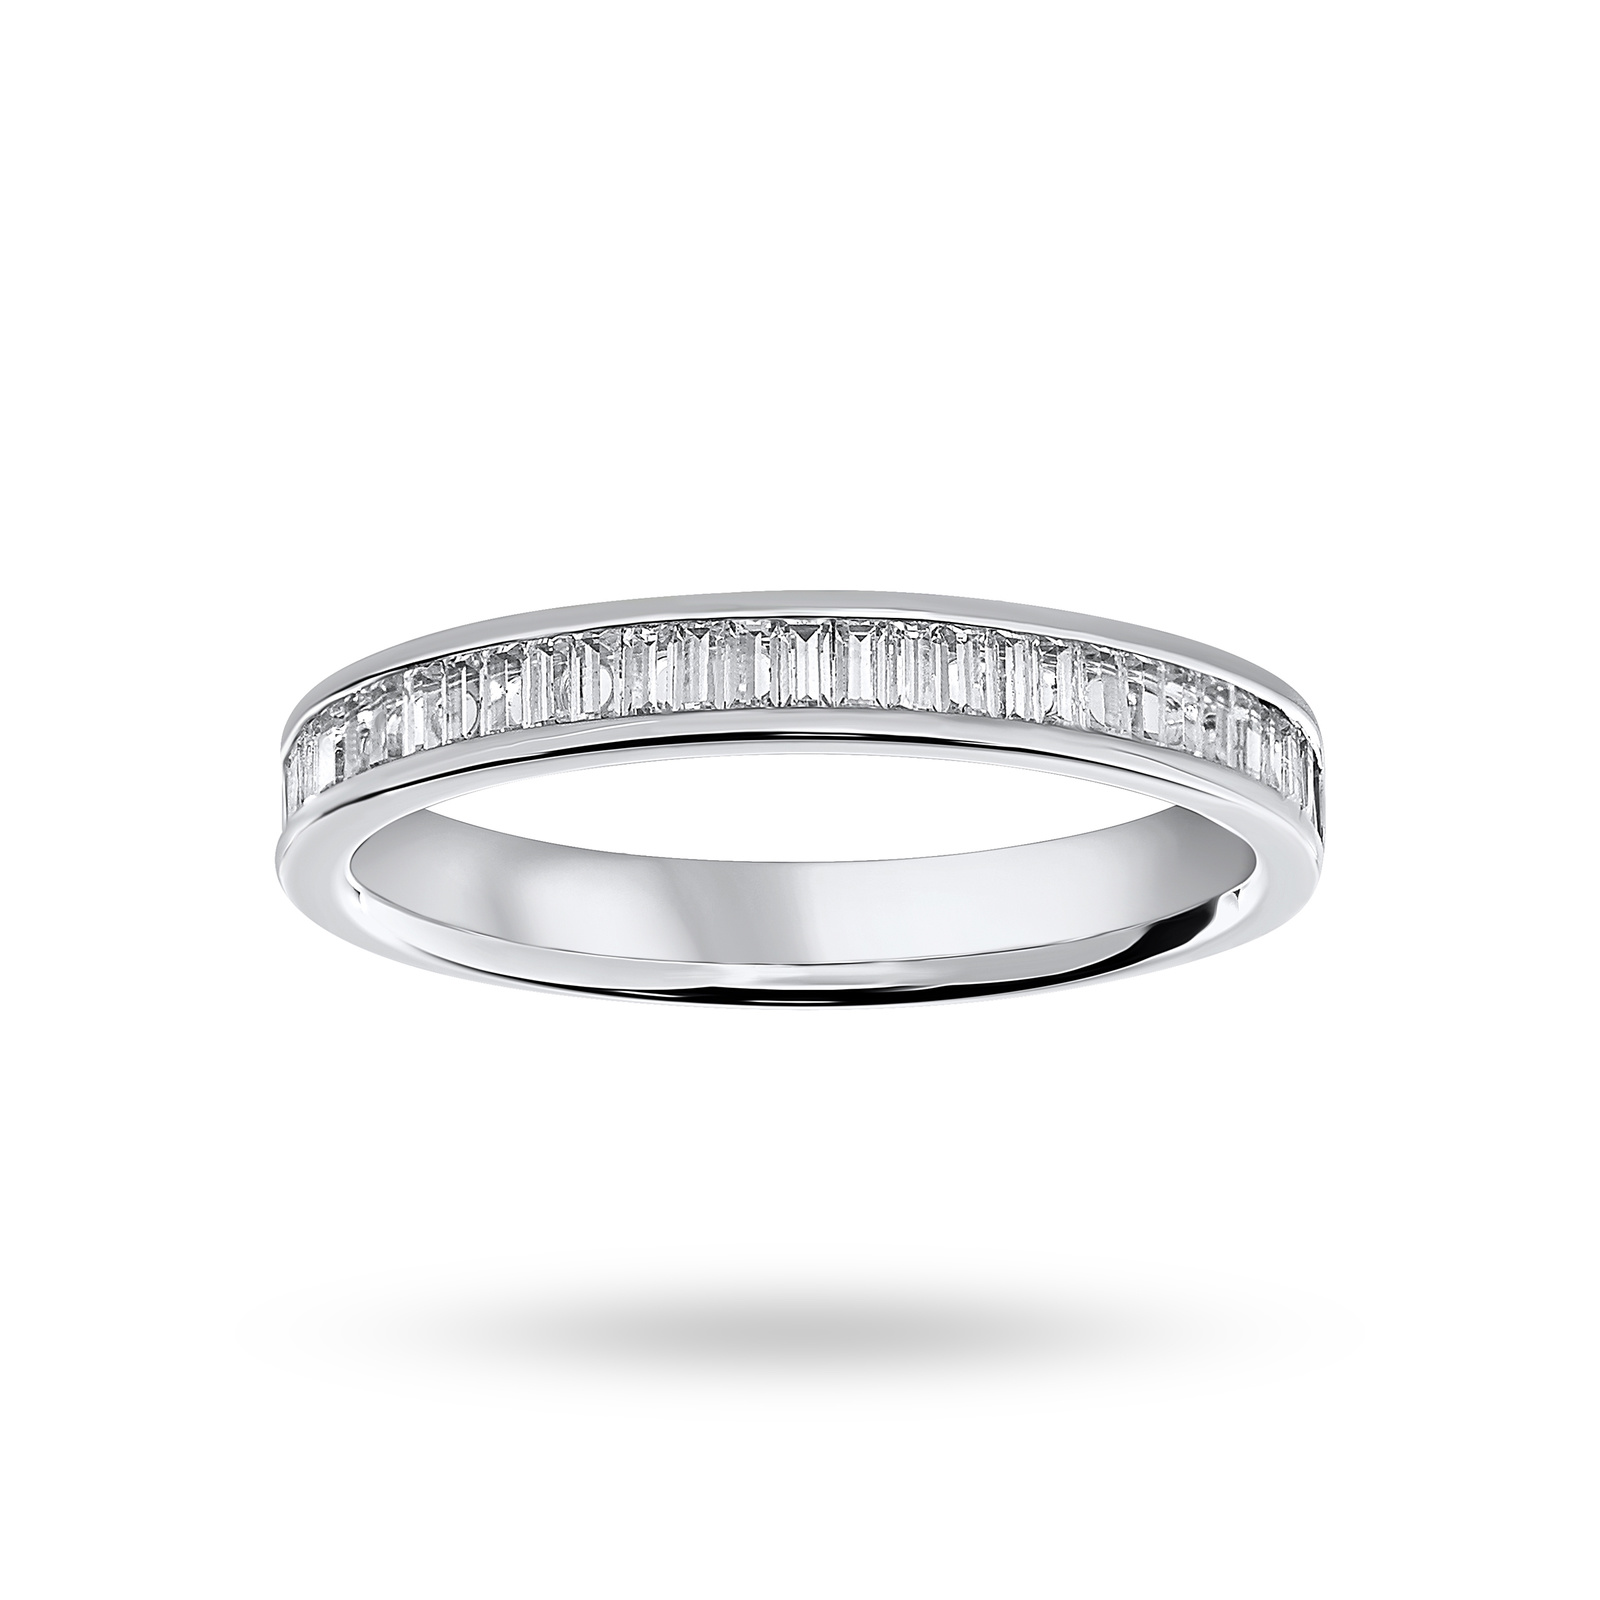 18 Carat White Gold 0.33 Carat Baguette Cut Half Eternity Ring